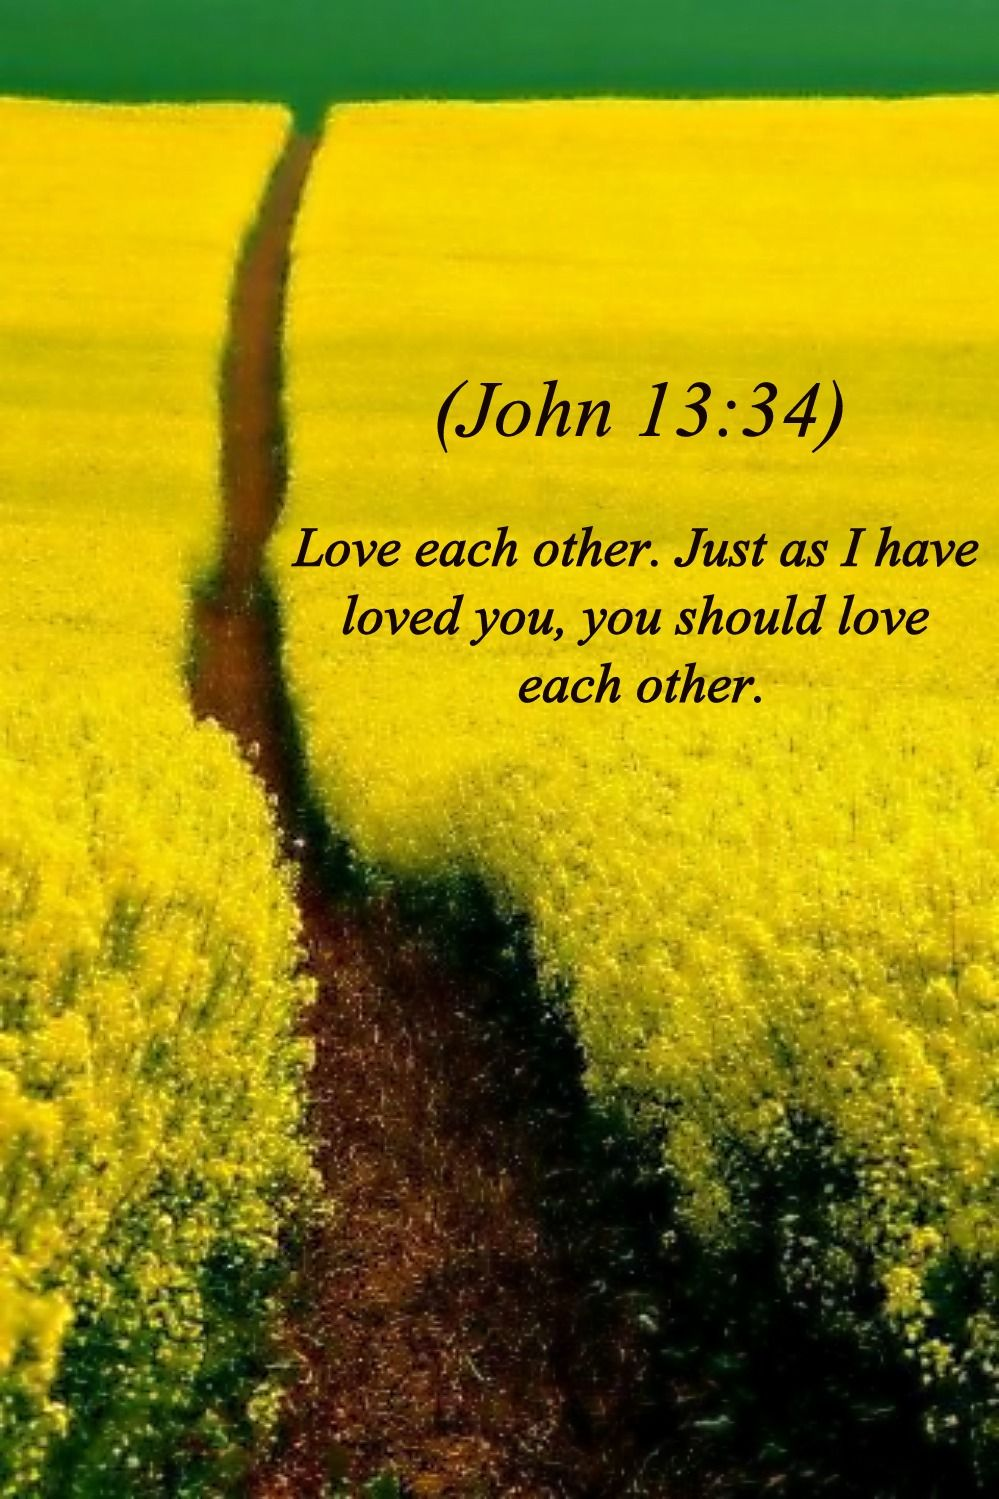 Pin on Bible Scripture Pictures